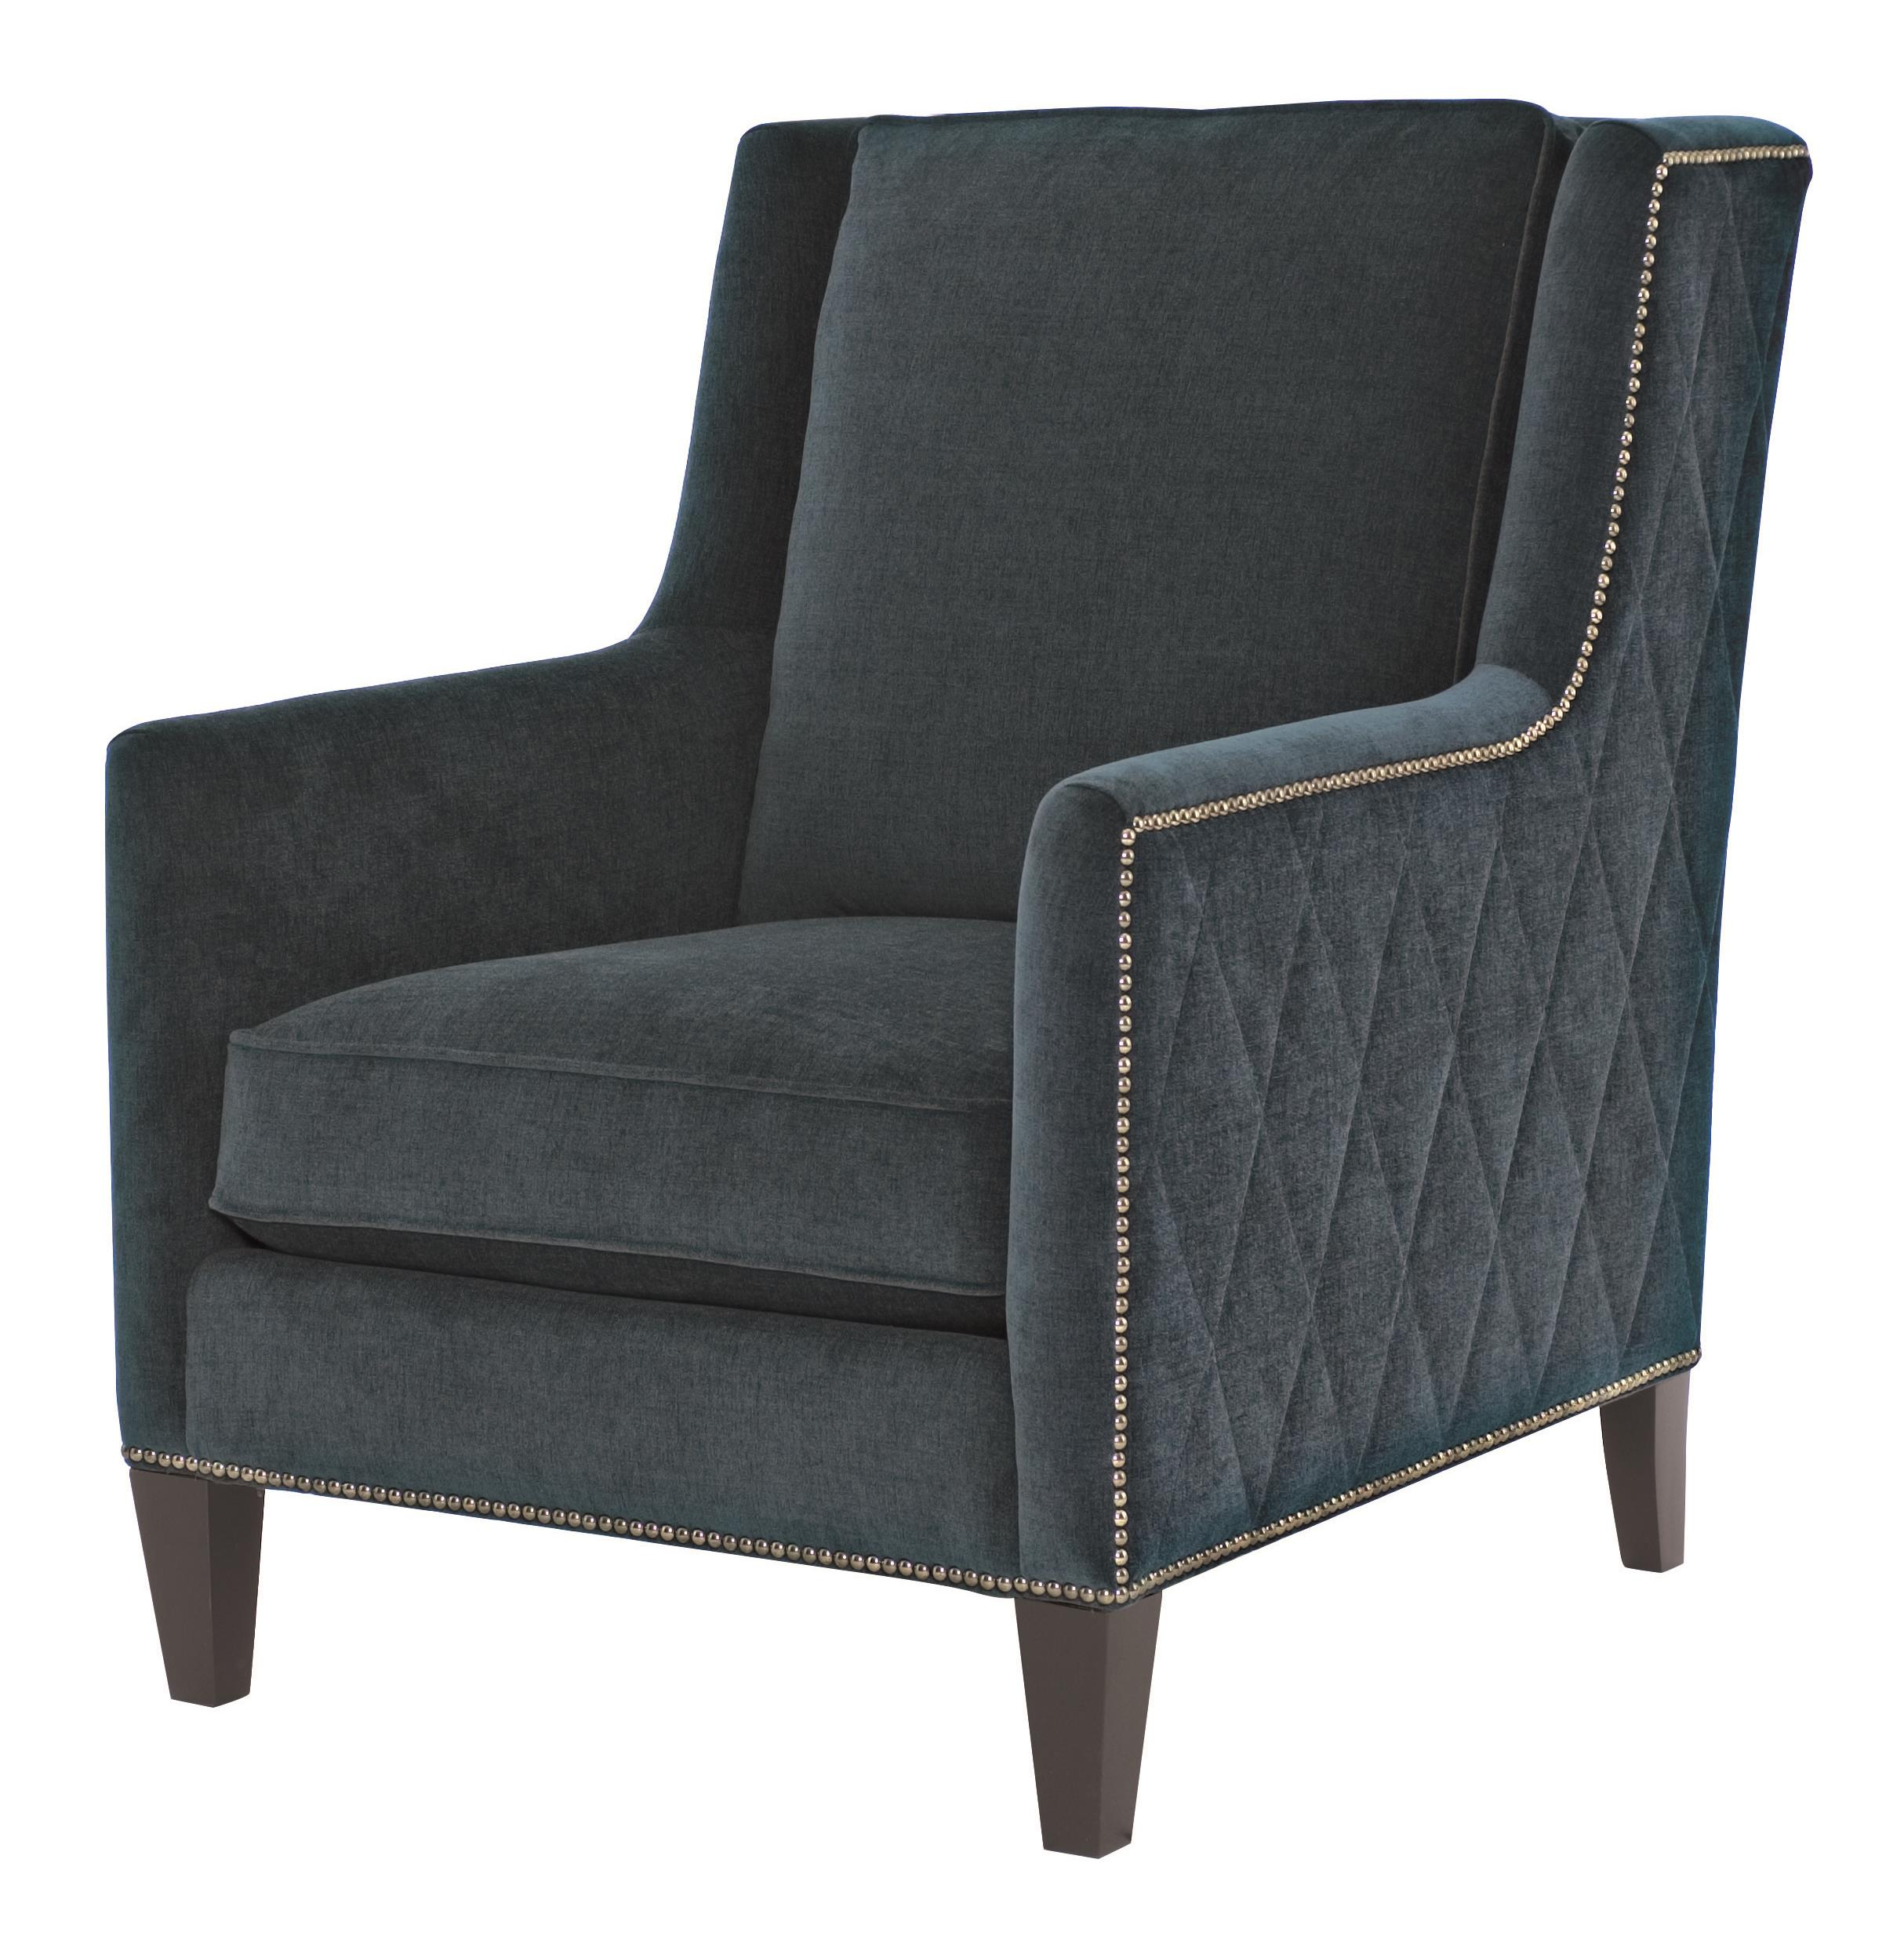 Bernhardt Upholstered Accents Almada Chair - Item Number: B4802-2909-043